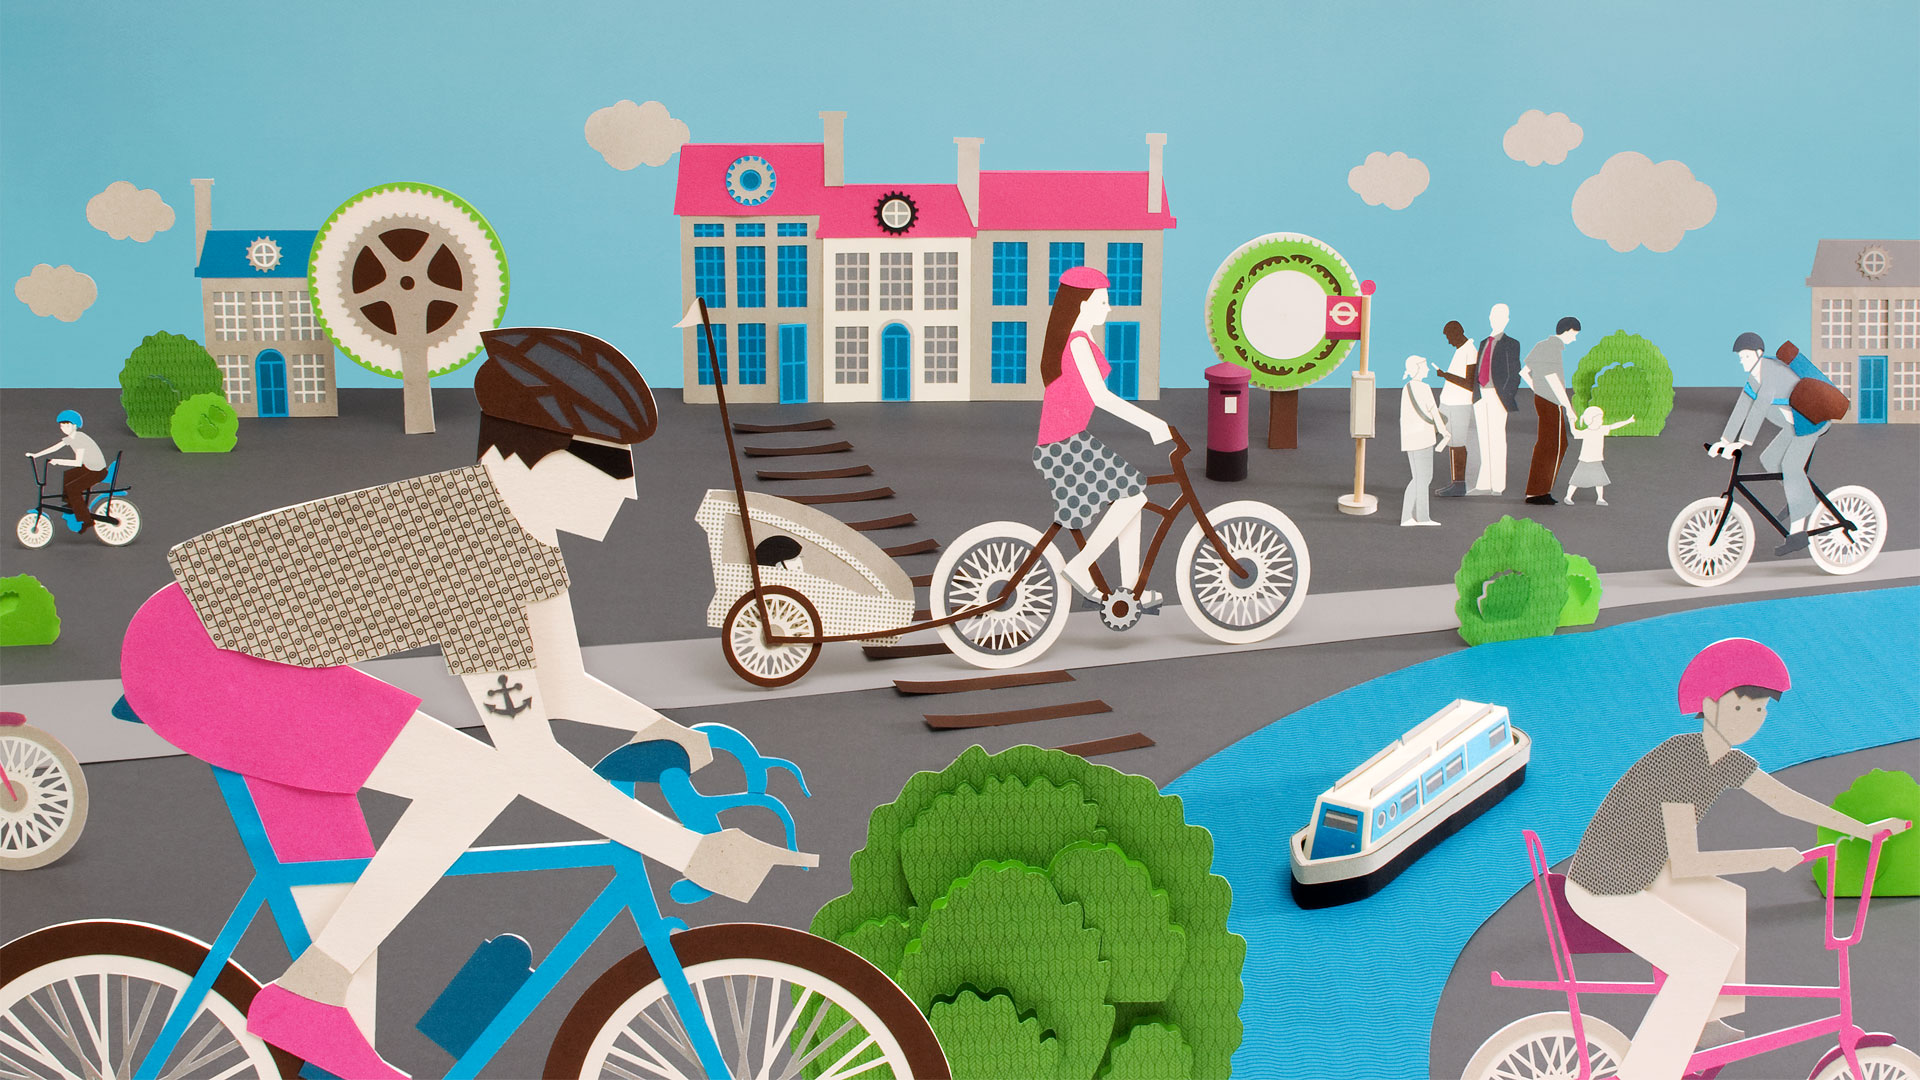 Papercut illustration about cycling.